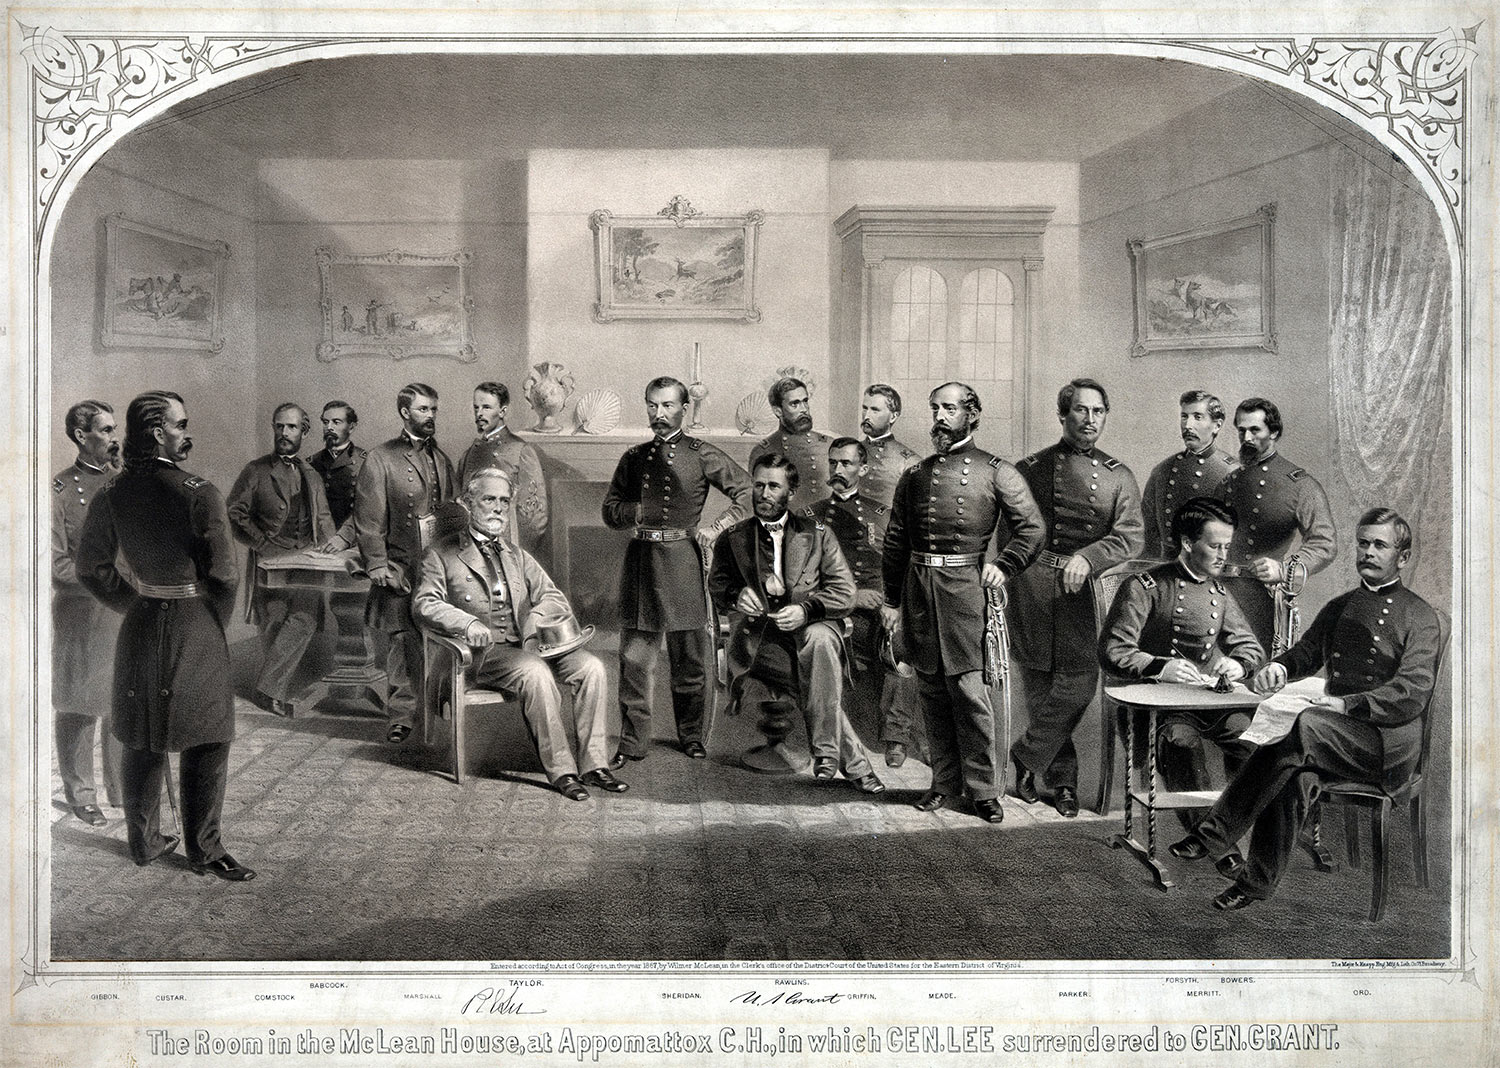 General Lee surrenders to General Grant